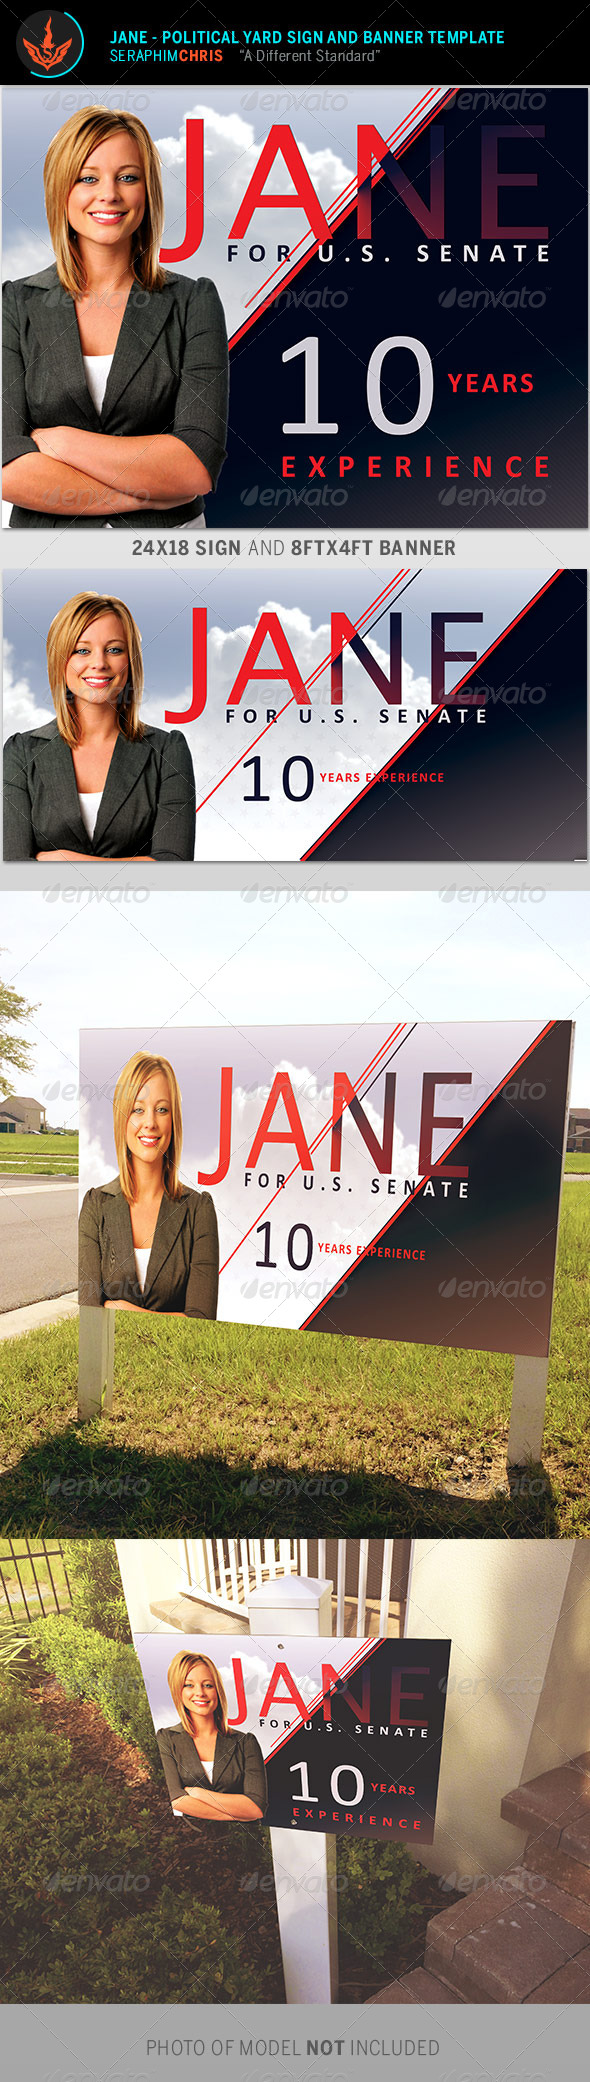 GraphicRiver Jane Political Yard Sign and Banner Template 8645753